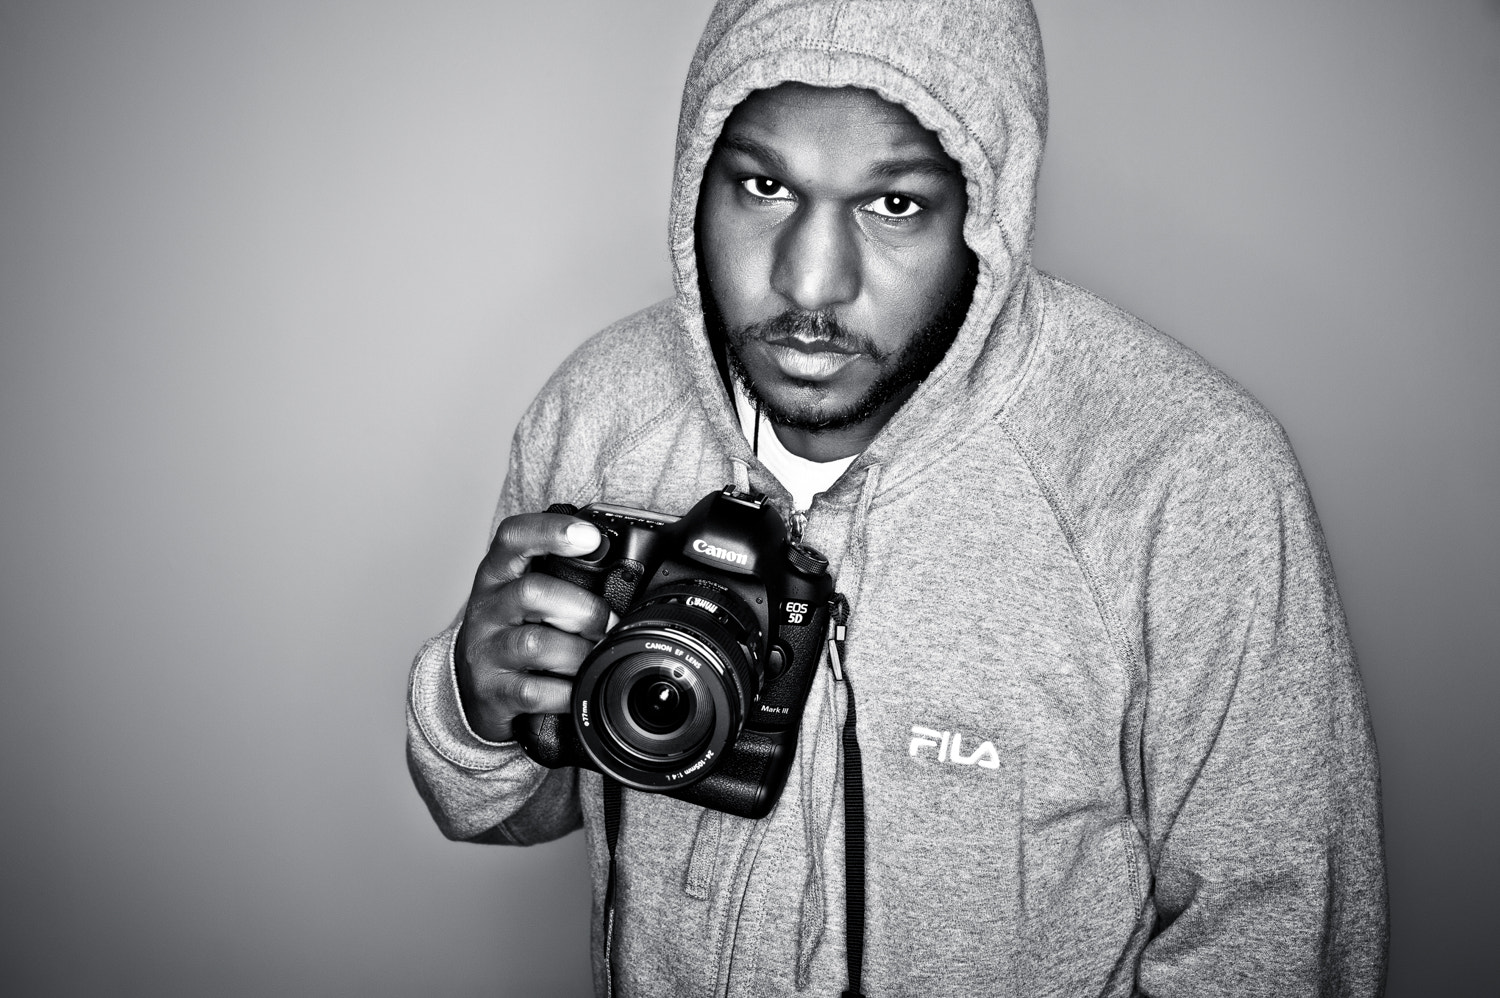 Photograph The Shooter by R Davis on 500px